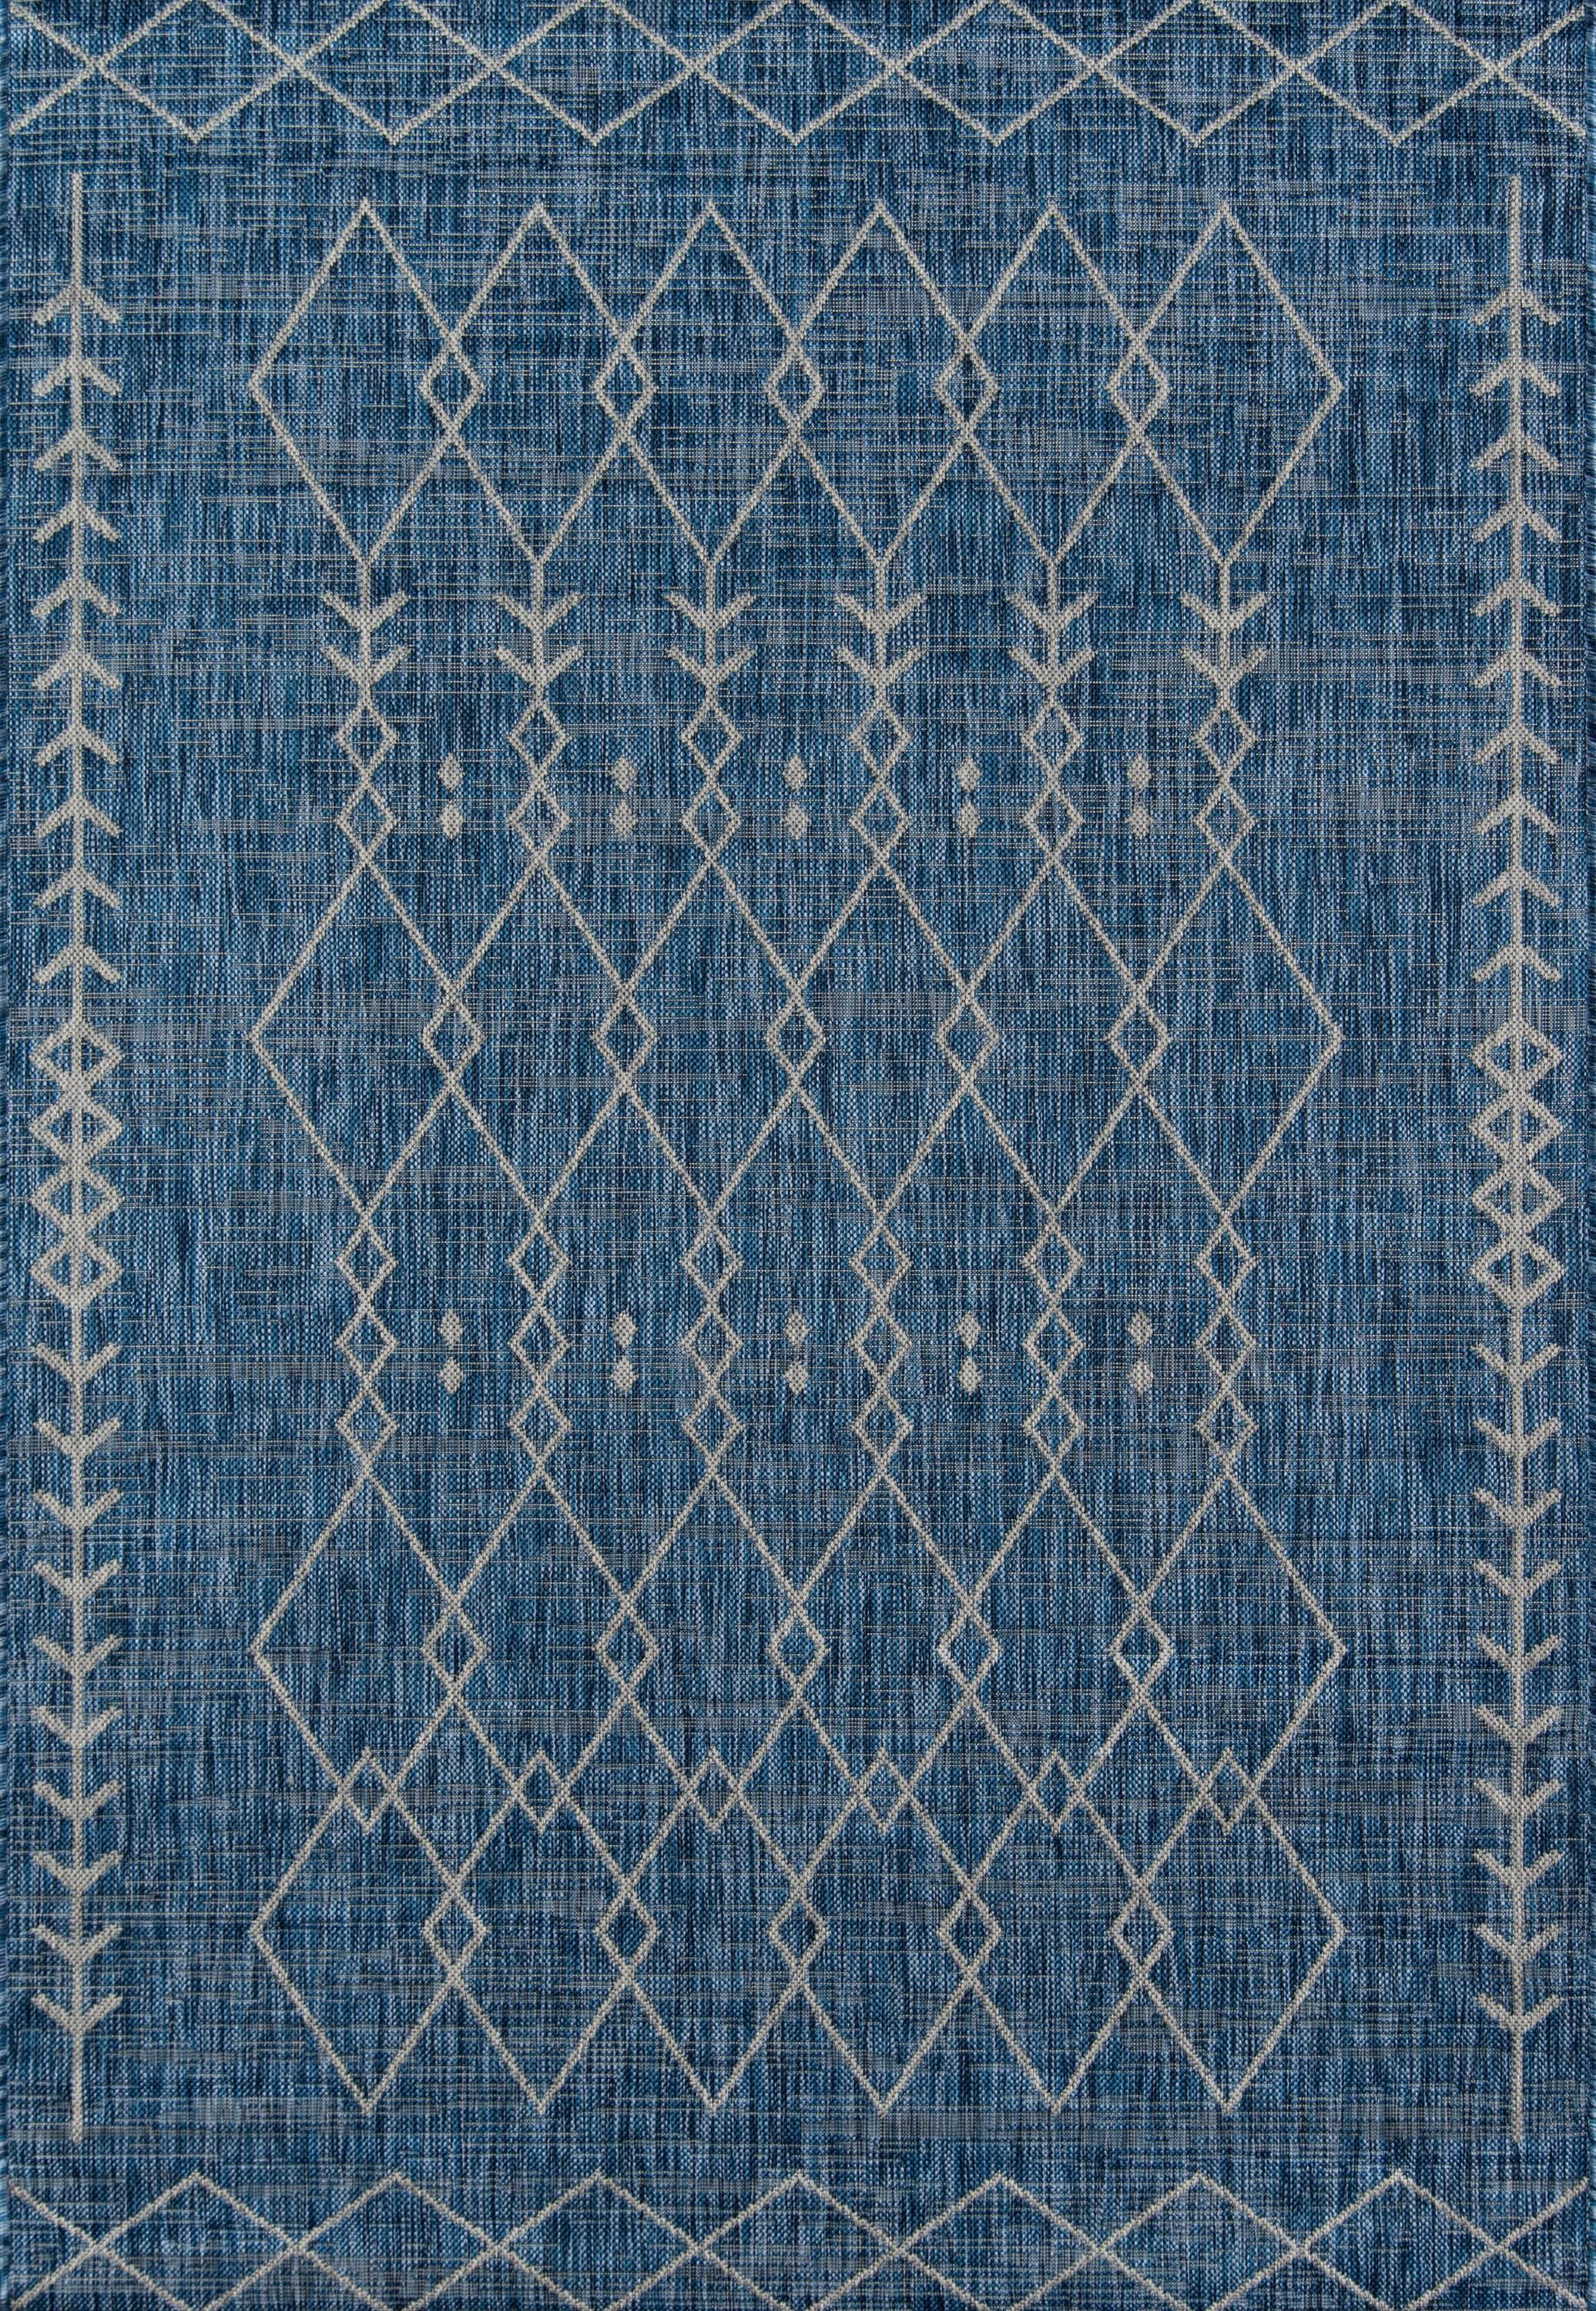 Patio Garden In 2020 Colorful Rugs Blue Area Rugs Indoor Rugs